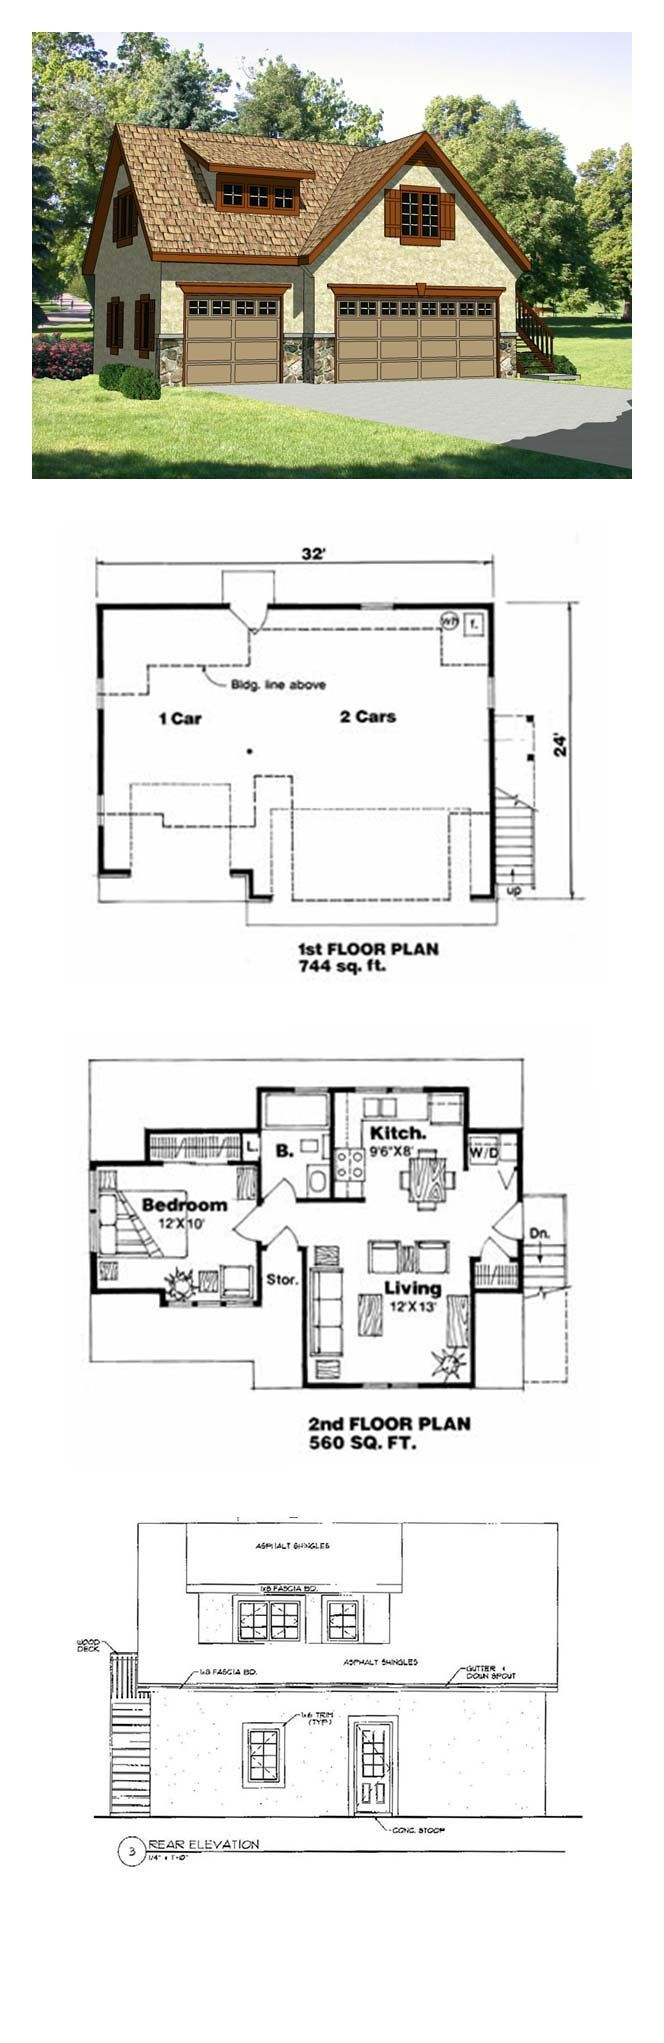 69 best carriage house plans images on pinterest garage for Carriage plans